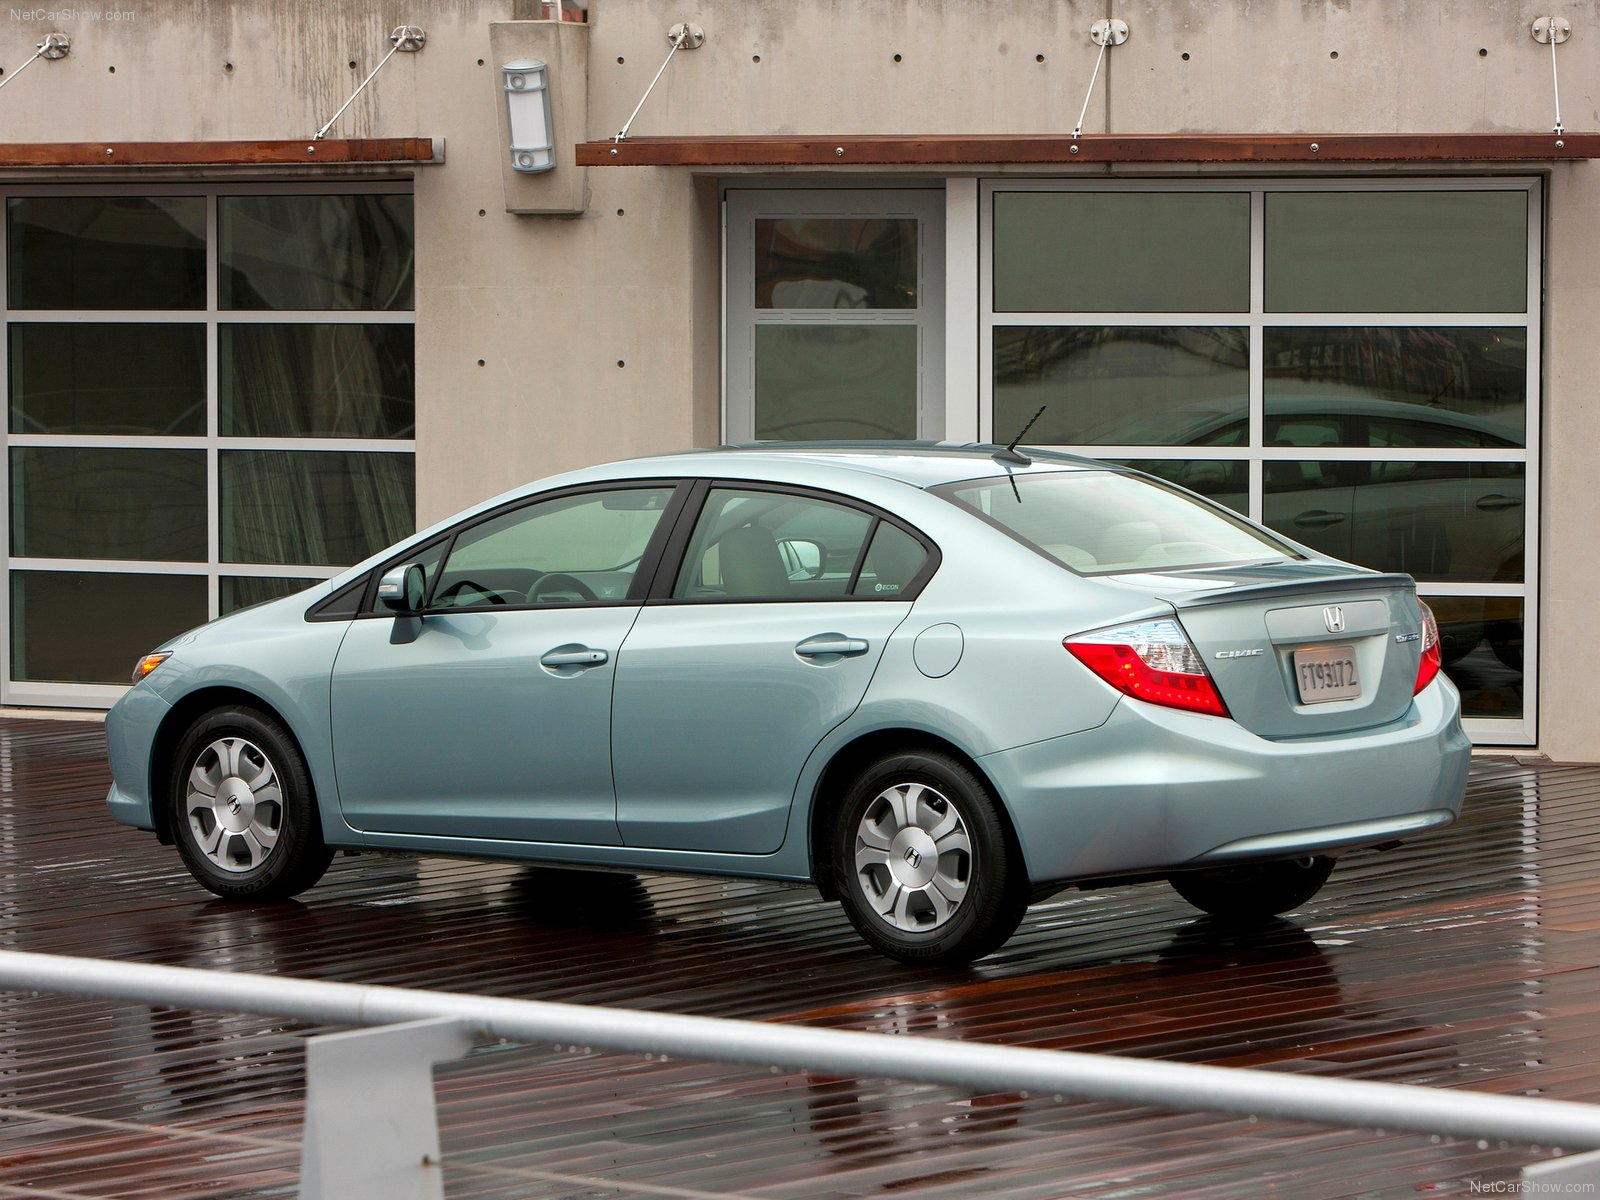 Honda Civic Hybrid picture 80127 Honda photo gallery CarsBasecom 1600x1200